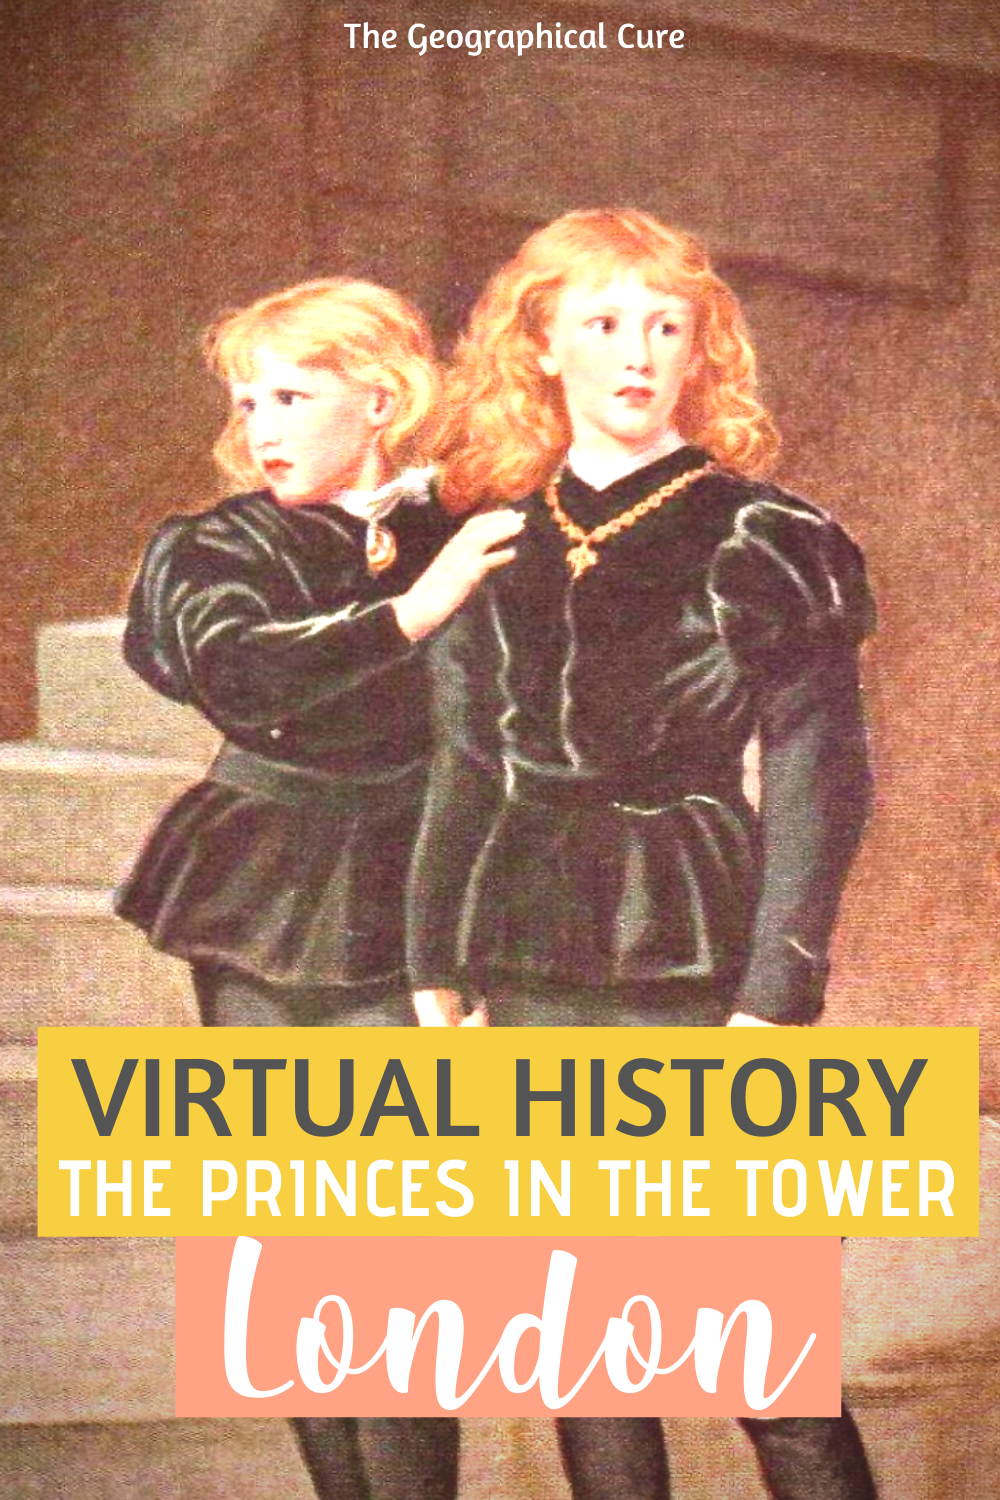 The princes in the tower -- the greatest unsolved murder mystery in British history